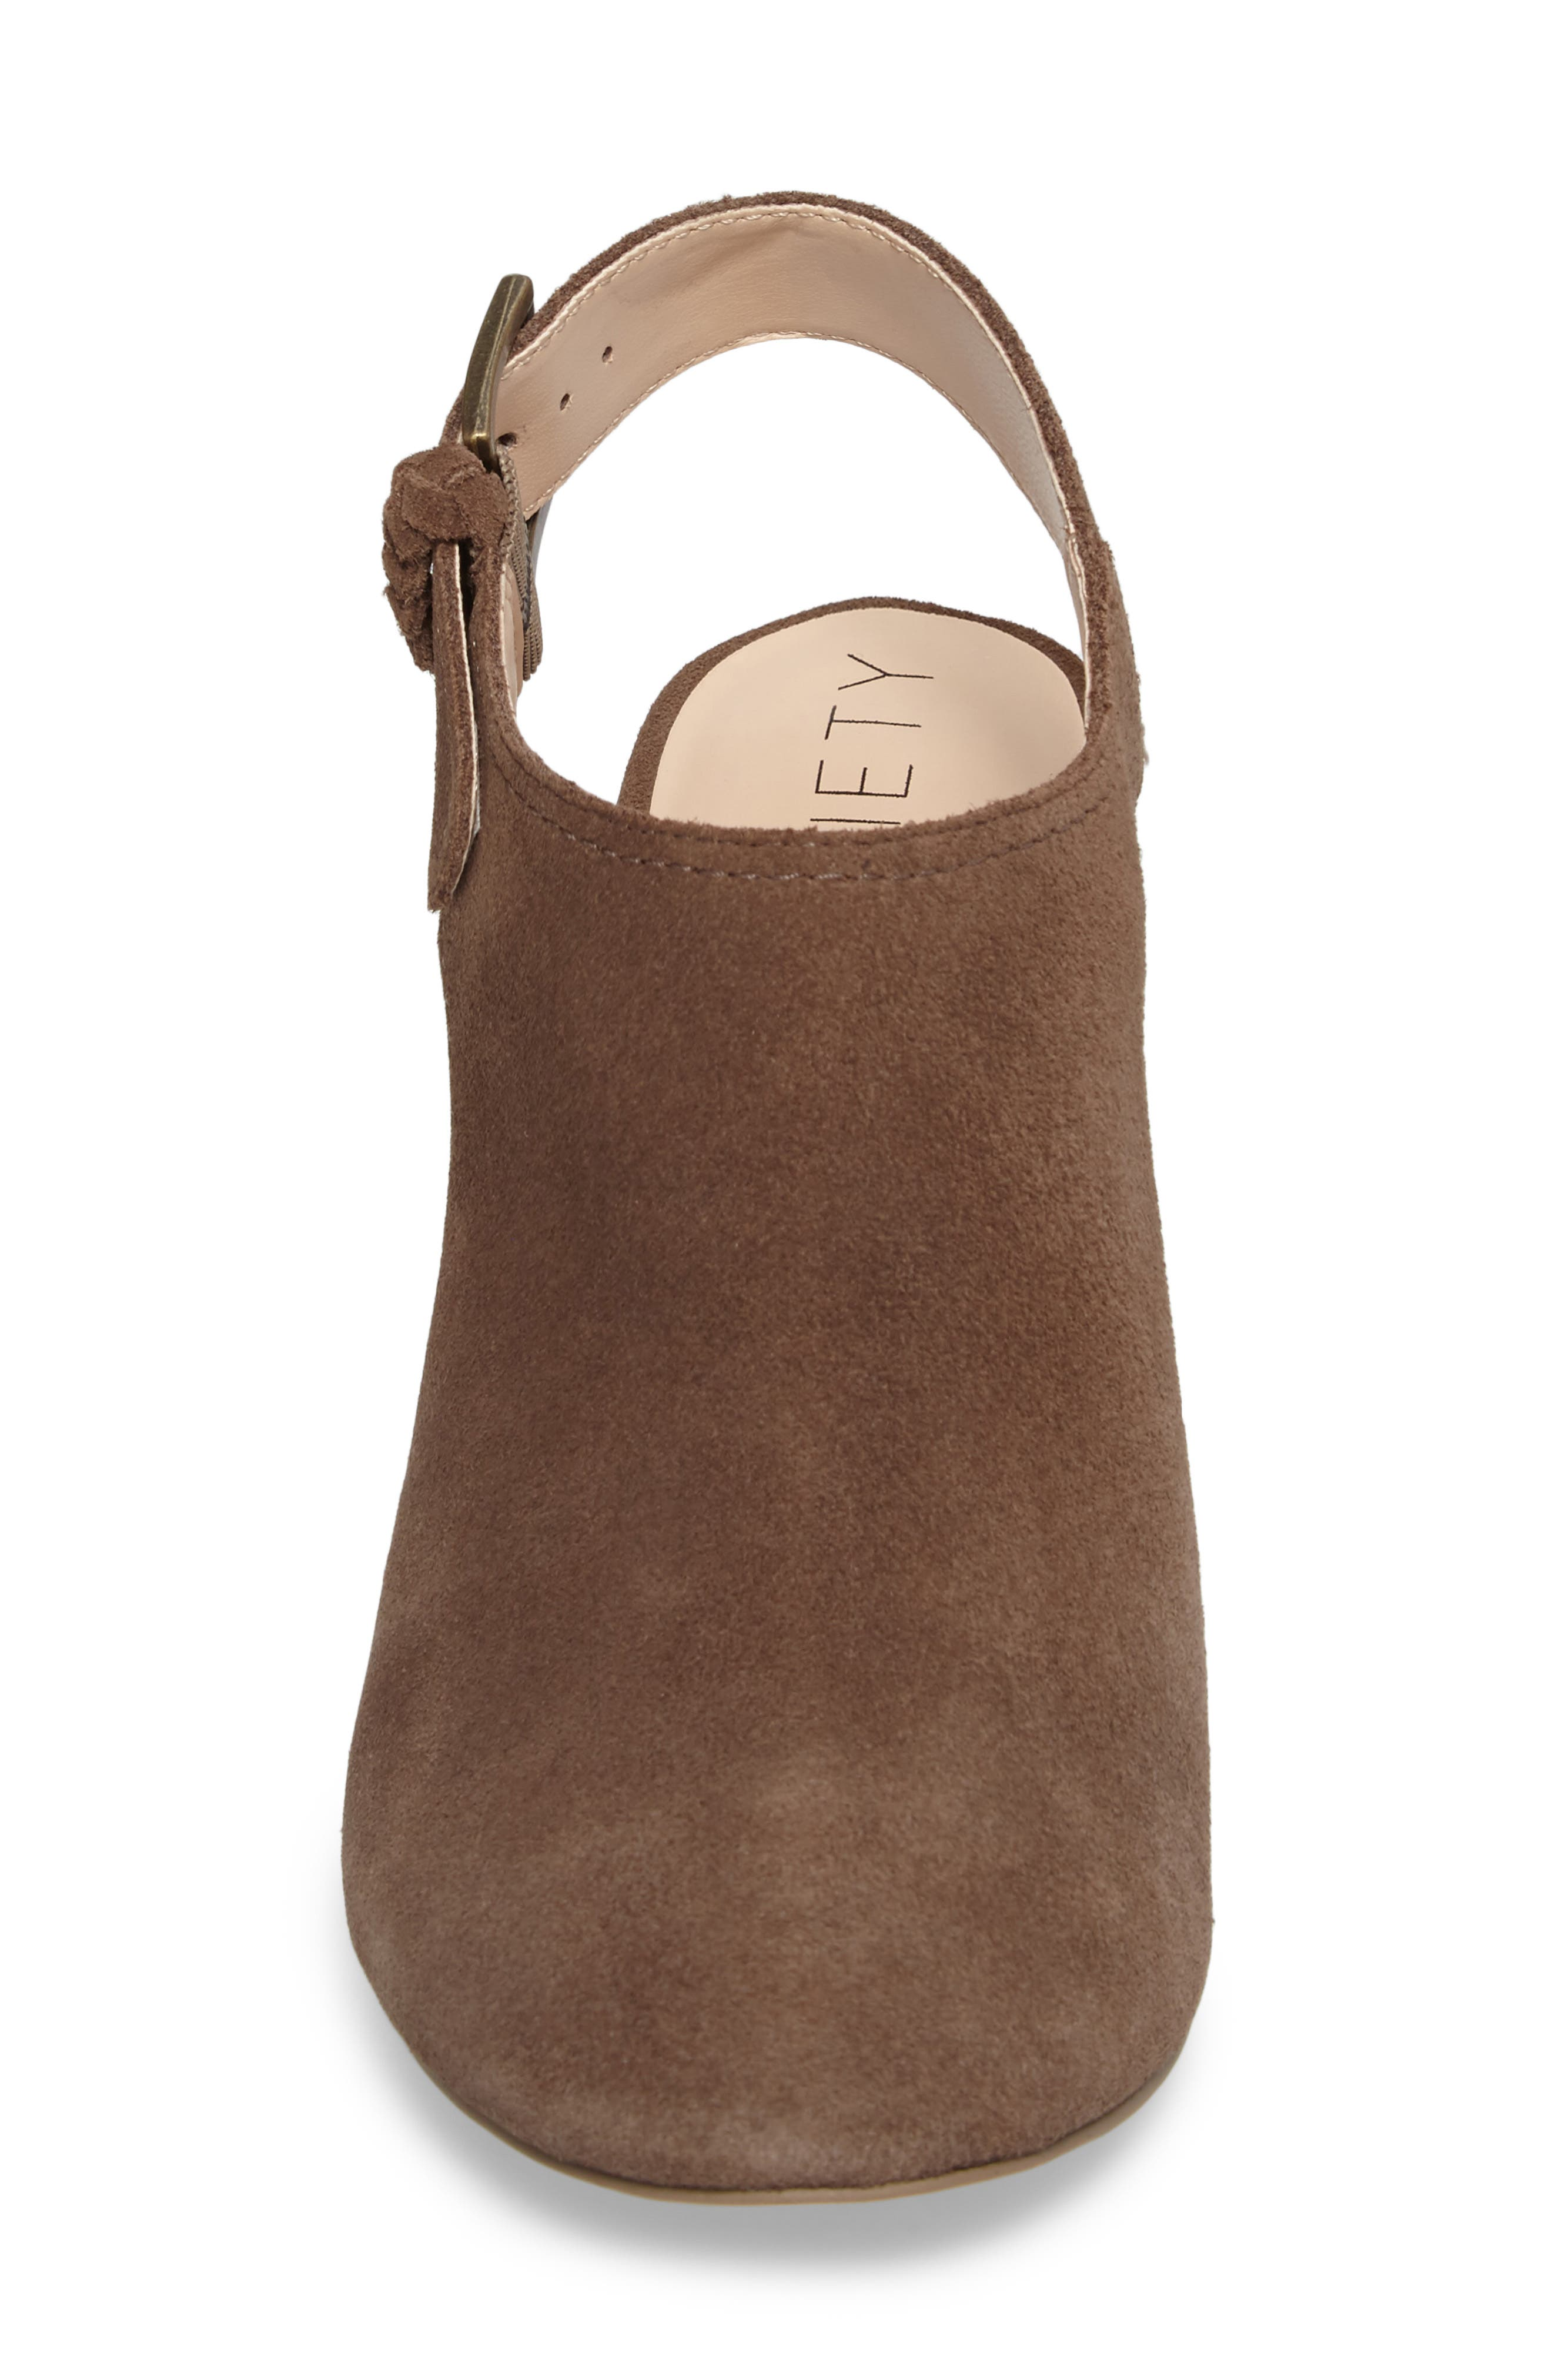 Apollo Slingback Bootie,                             Alternate thumbnail 4, color,                             Dark Taupe Suede Suede